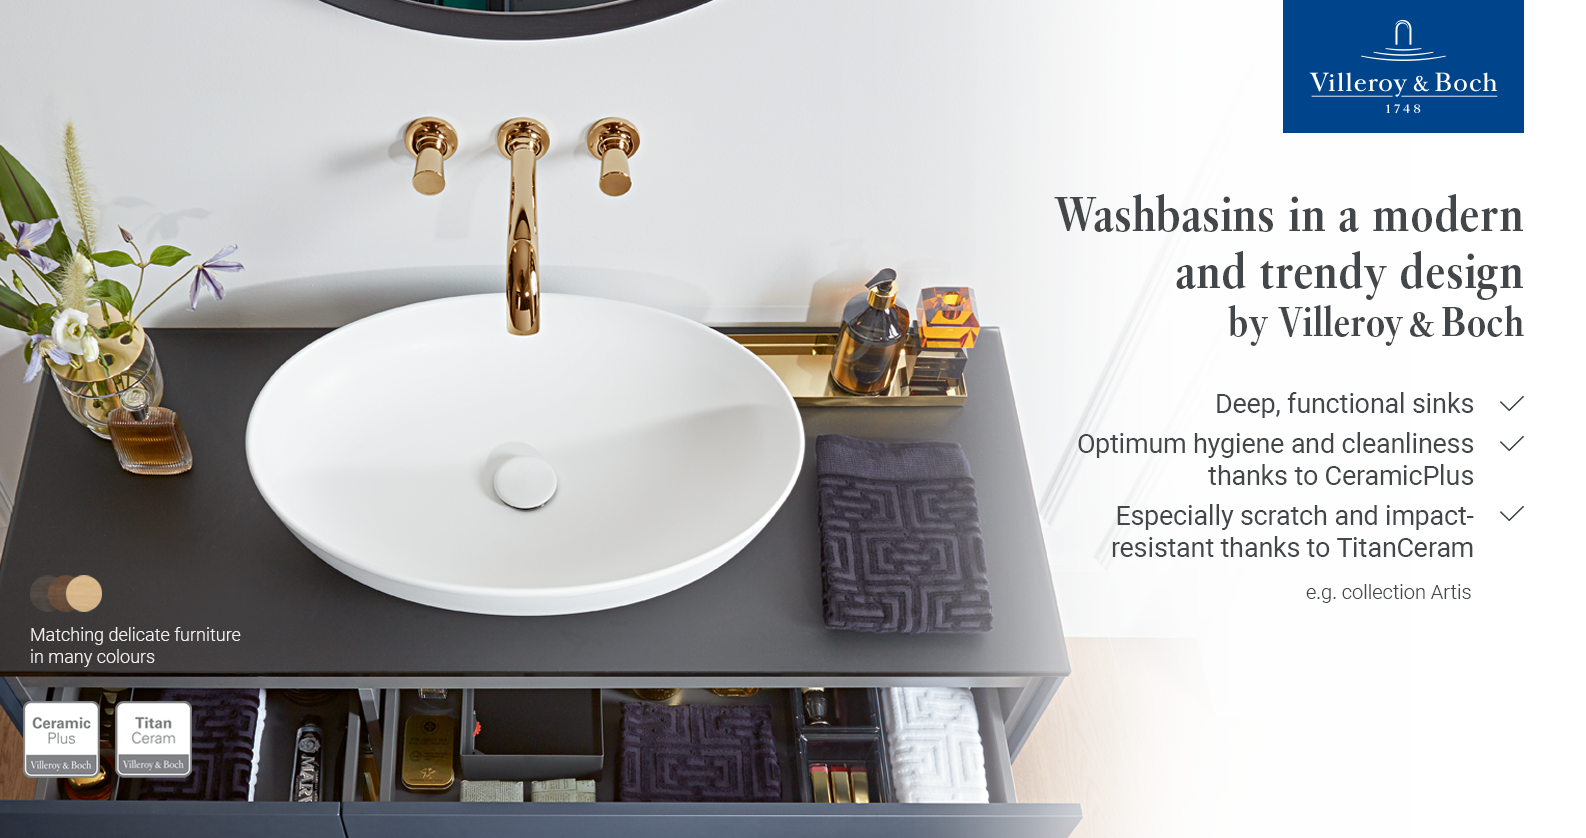 Discover Villeroy & Boch Artis at xTWOstore